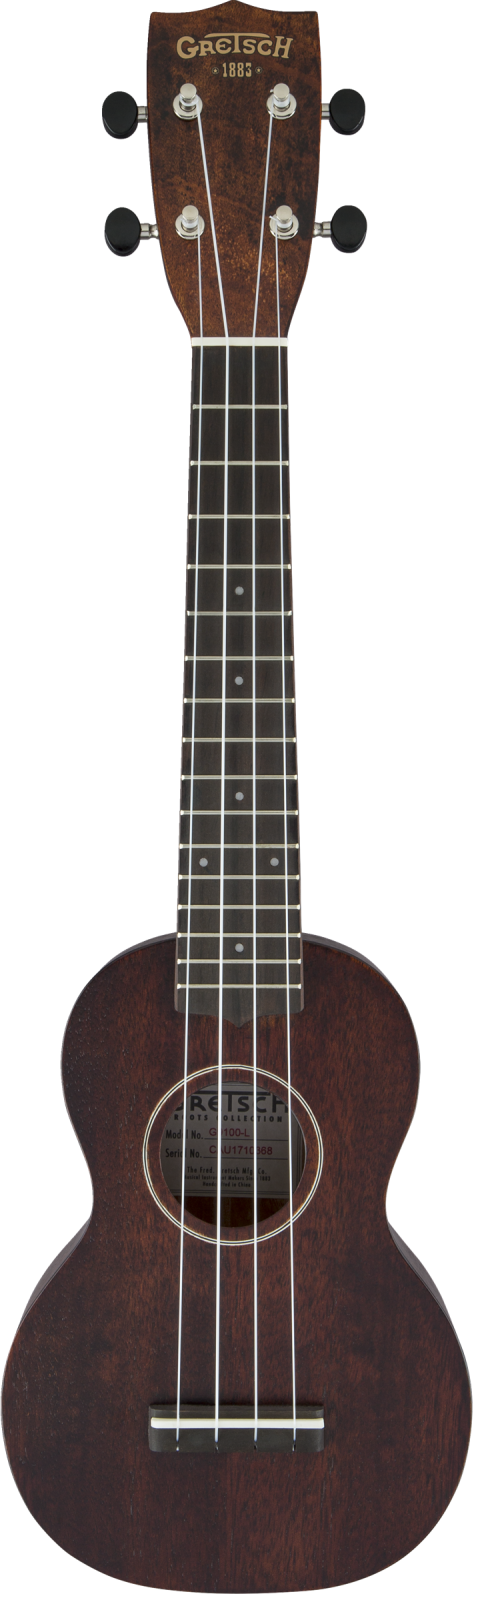 Gretsch G9100-L Soprano Long-Neck Ukulele with Gig Bag